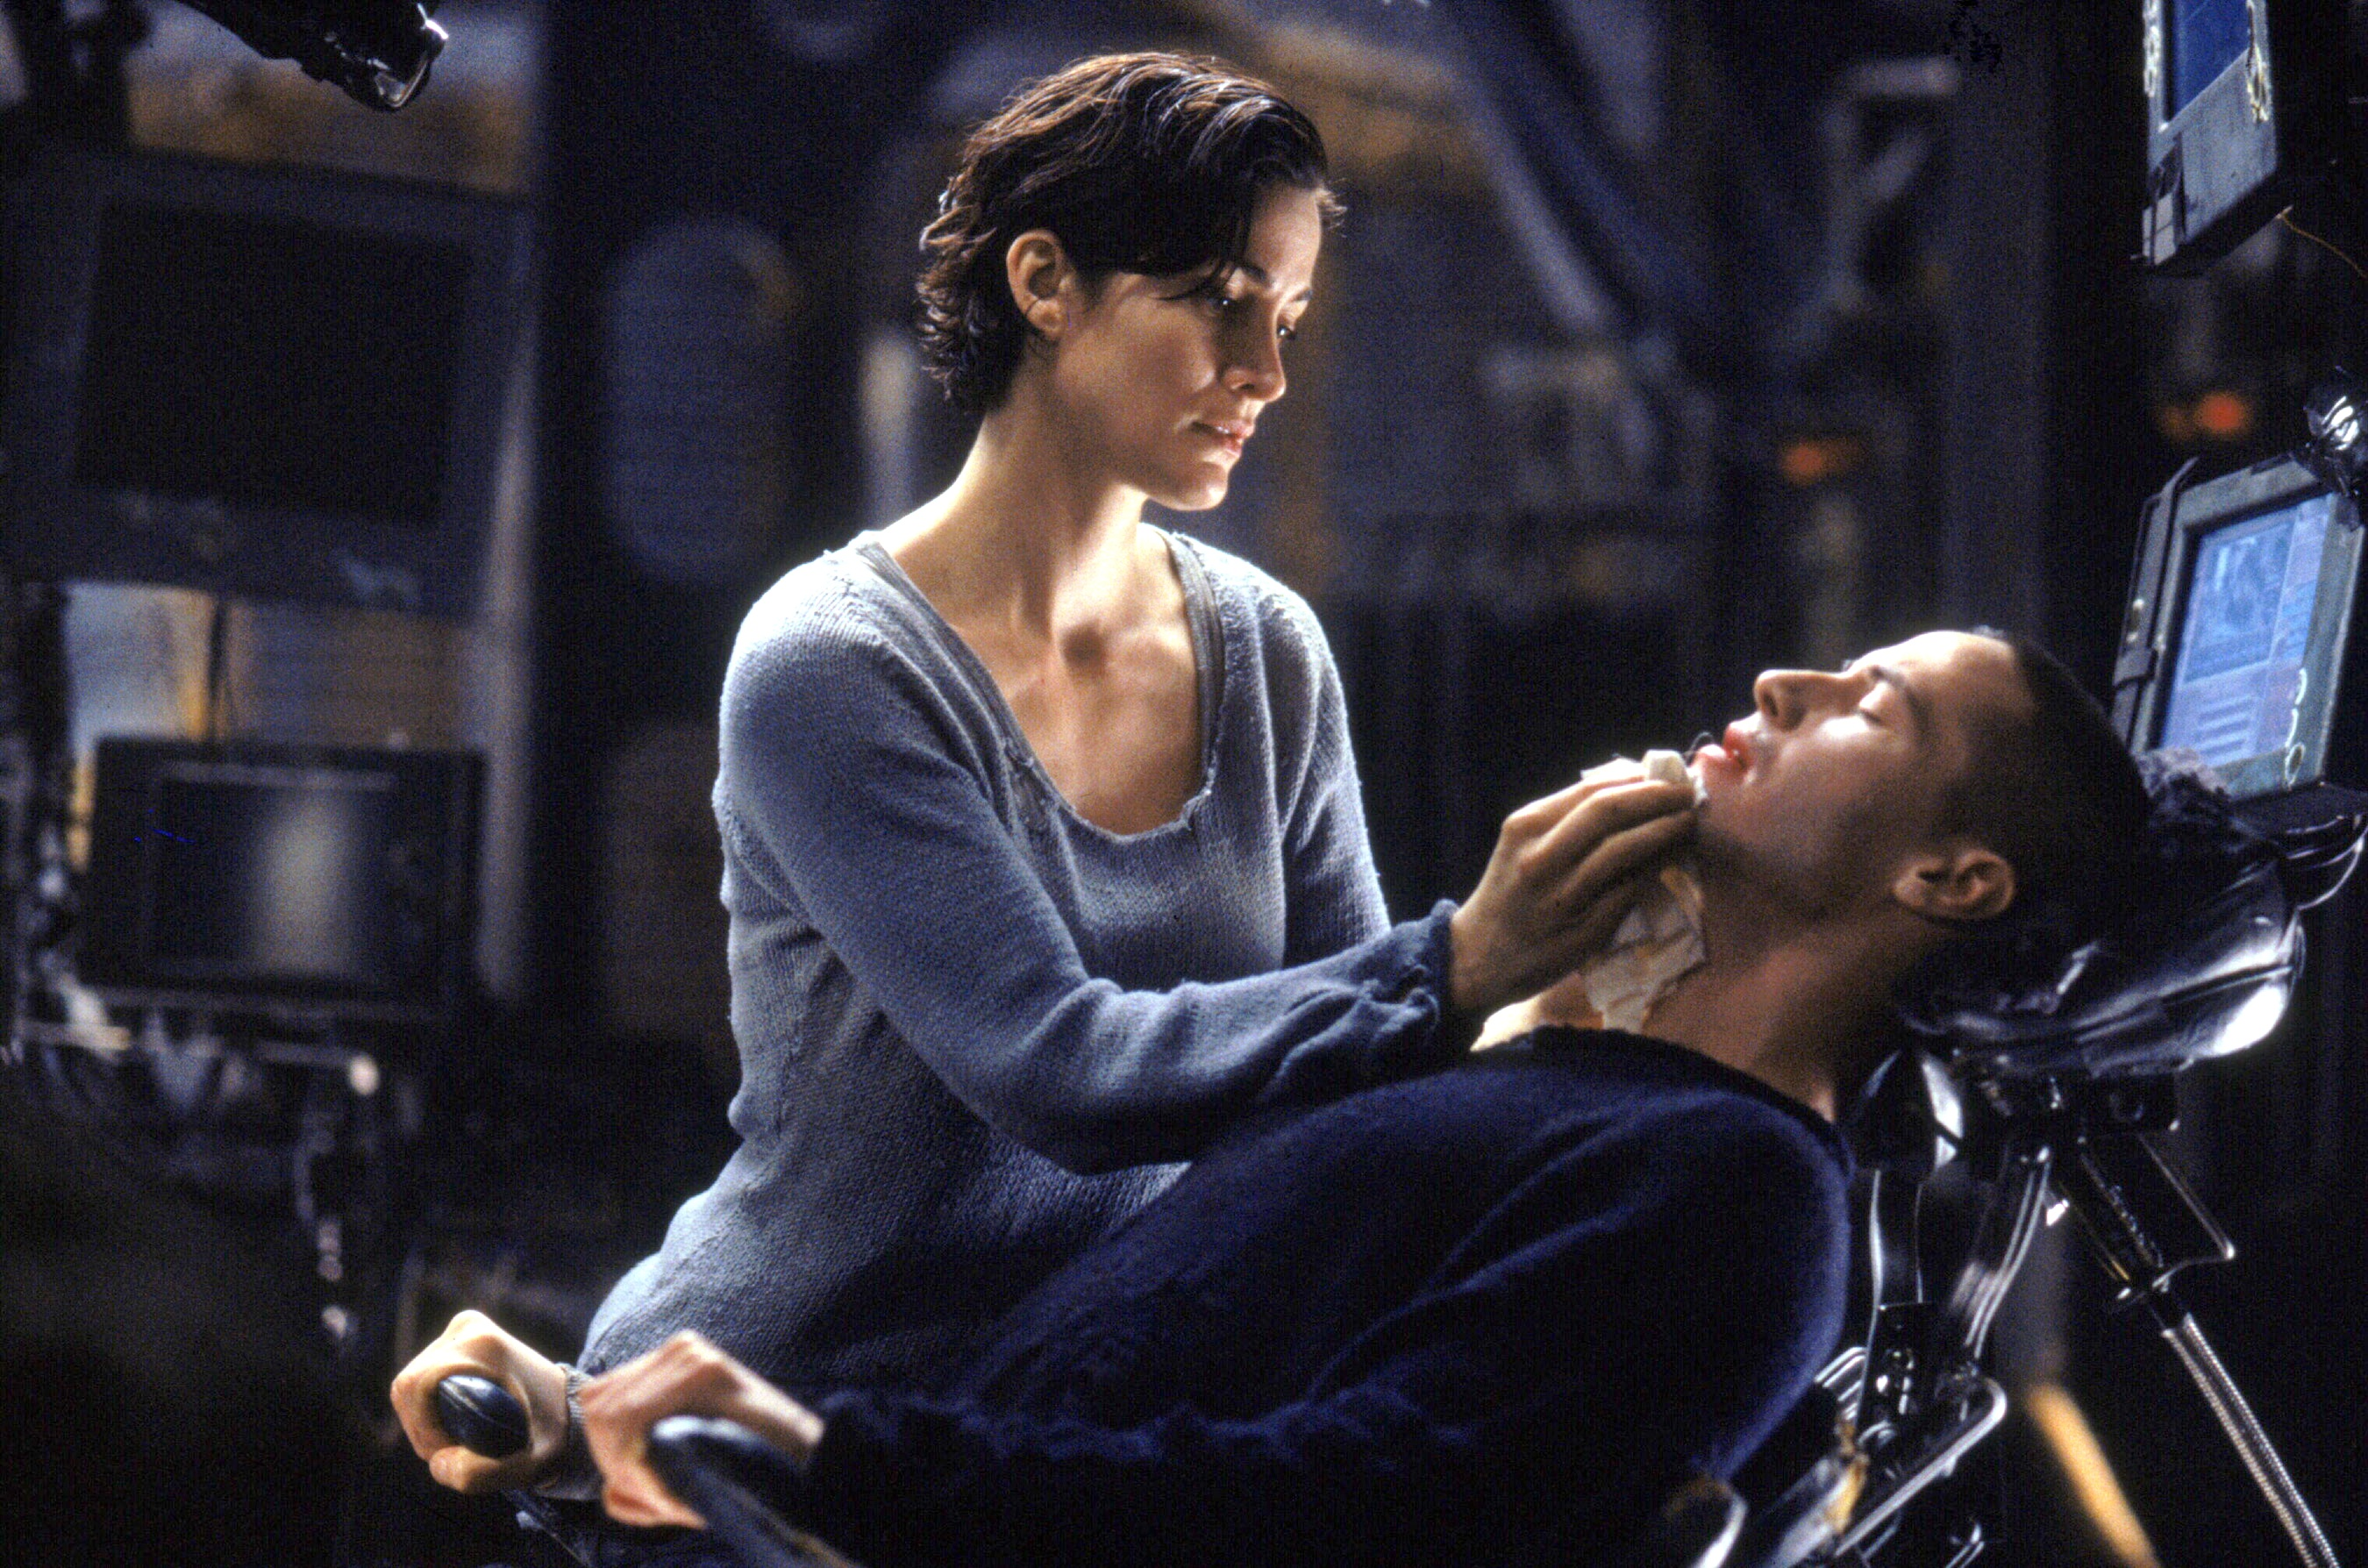 THE MATRIX, Carrie-Anne Moss, Keanu Reeves, 1999. (c) Warner Bros./ Courtesy: Everett Collection.